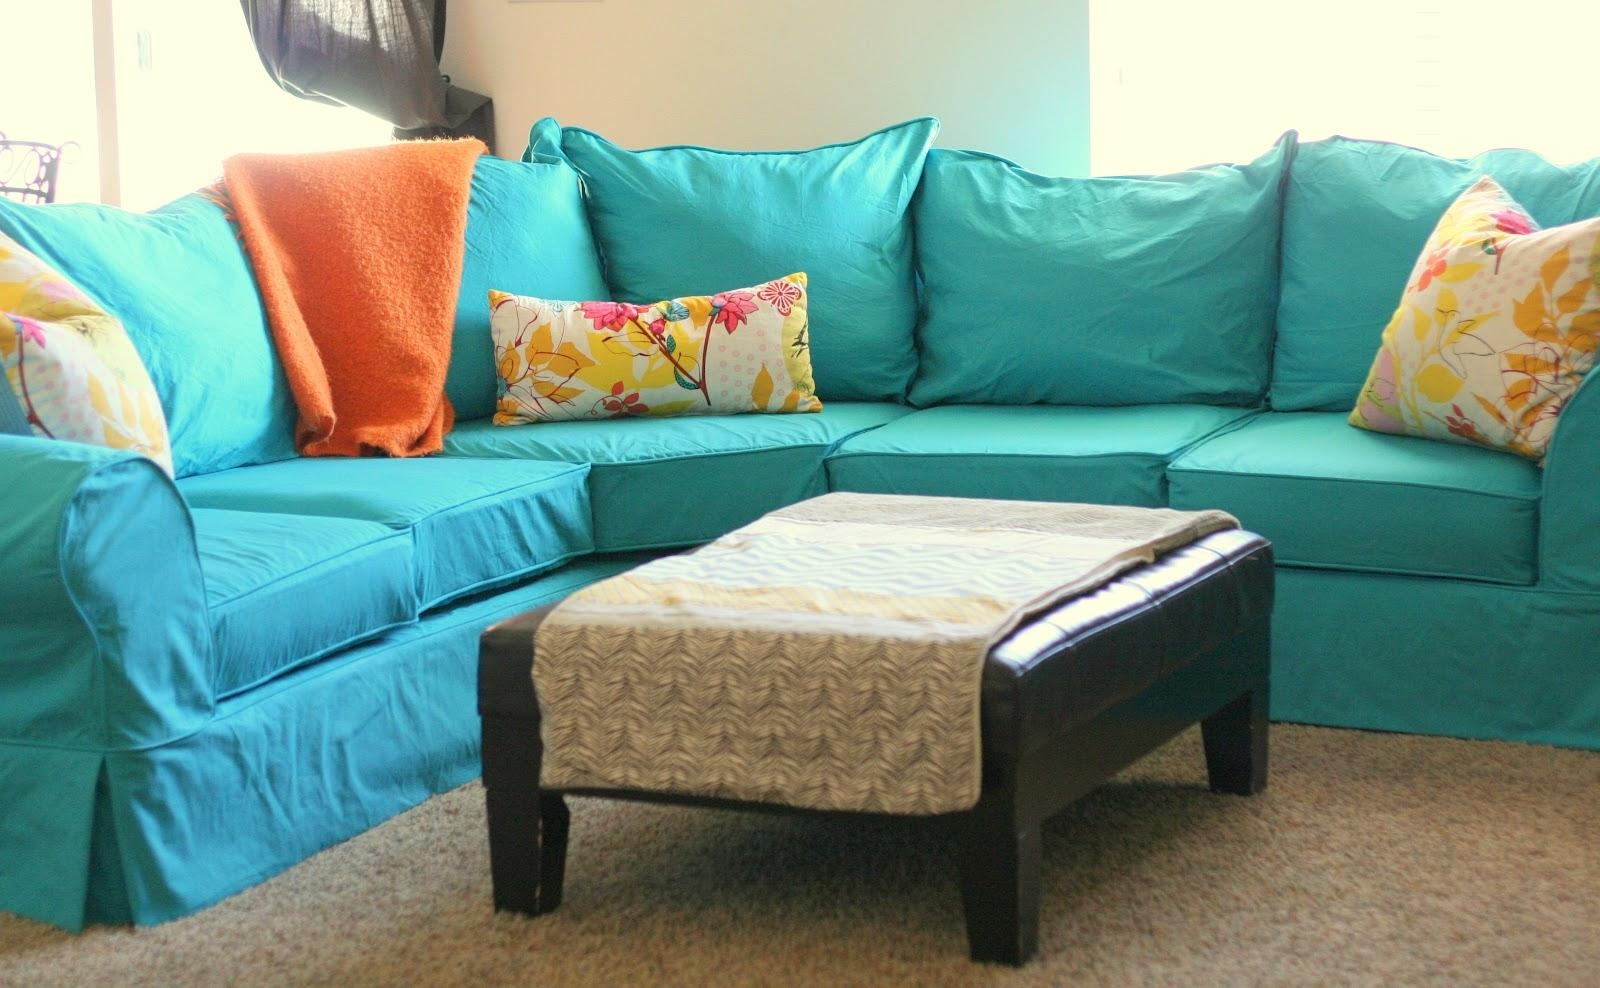 Slipcovers For Leather Couches | Homesfeed Throughout Slipcover For Leather Sofas (Image 18 of 20)